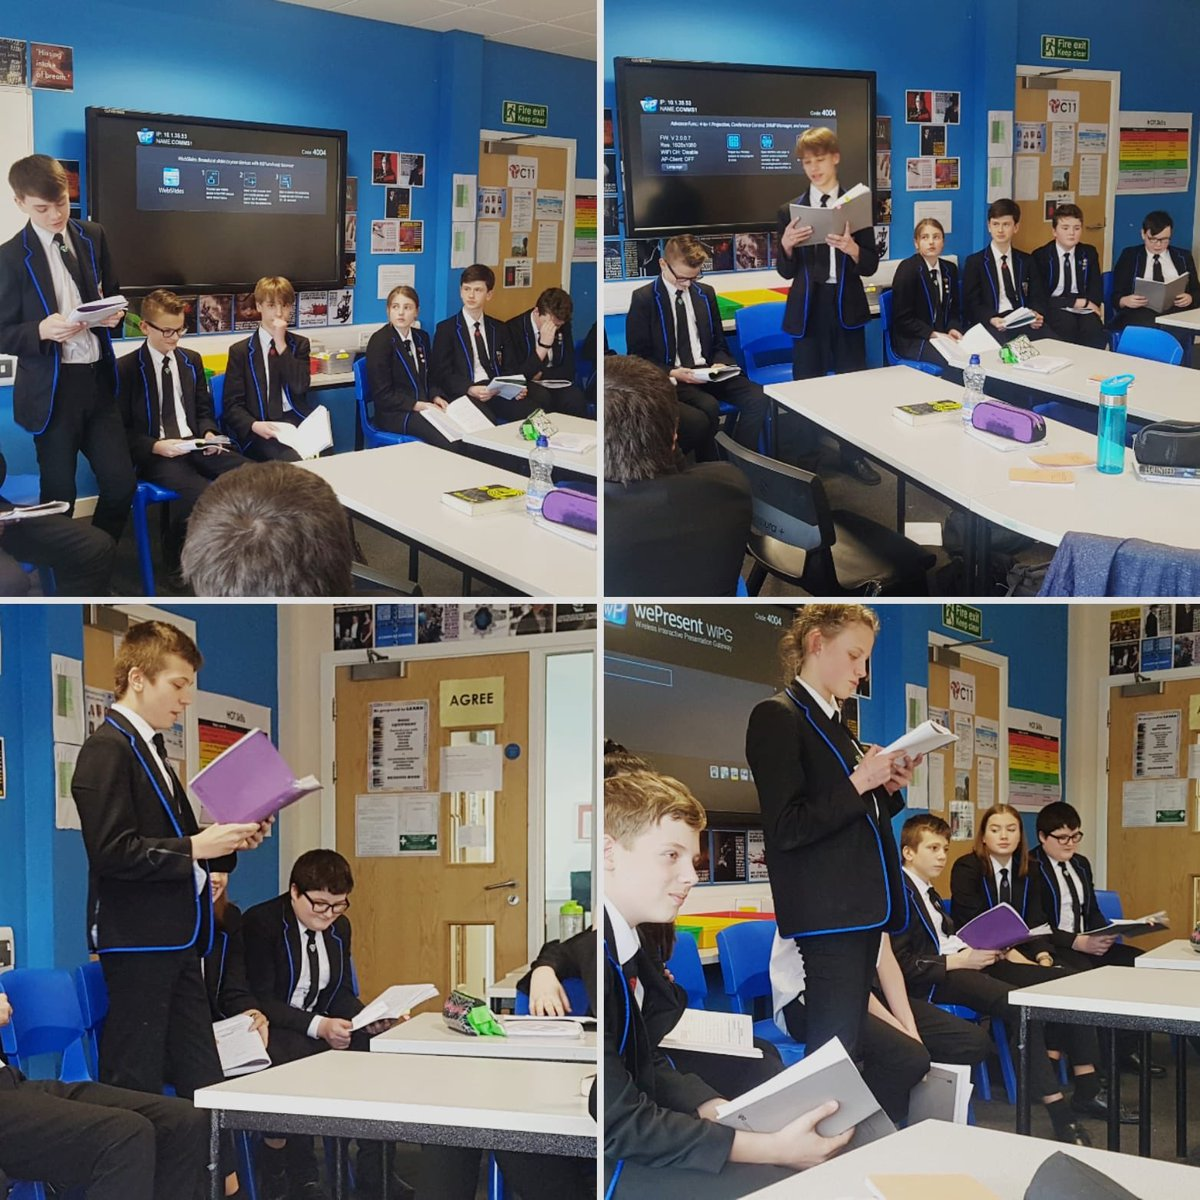 Mrs Griffiths' Year 9s have been working on their debating skills today.  The statement: Victorian children were failed by society. #debates #history #persuasivewriting